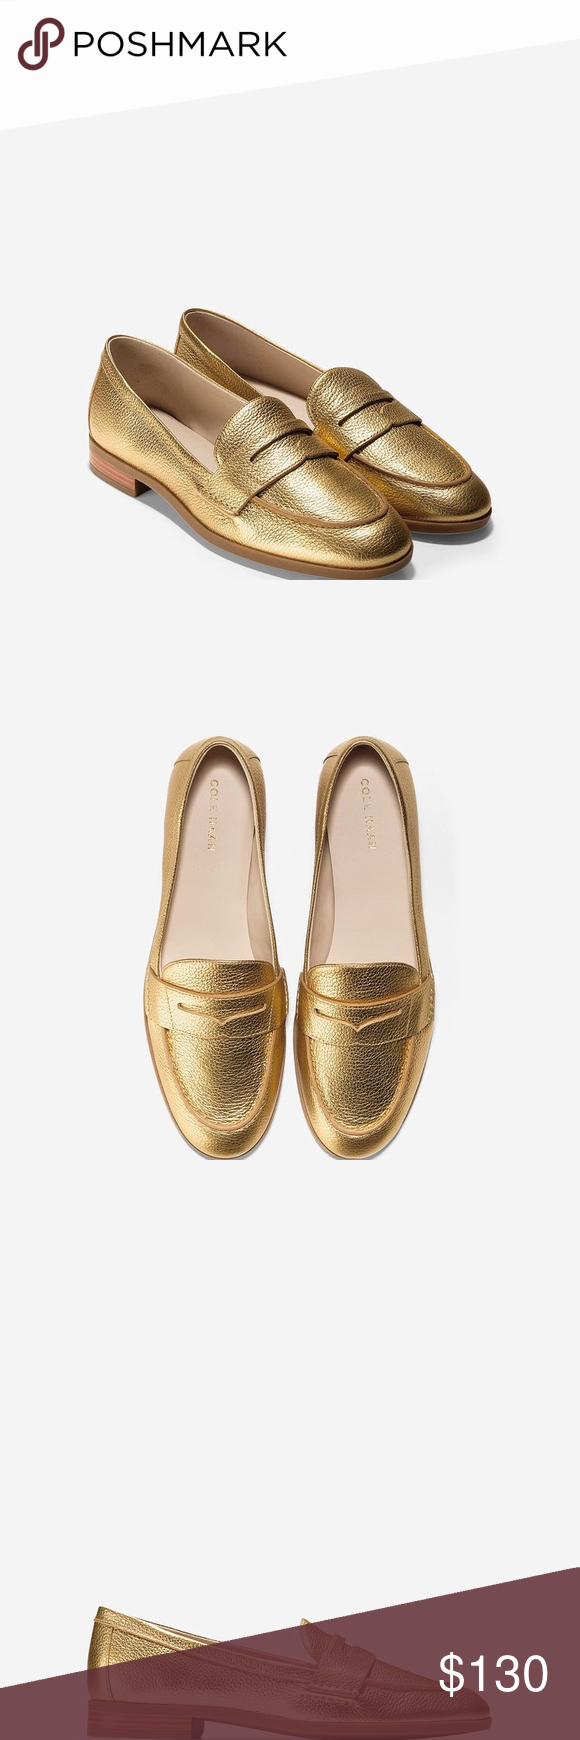 7b32c10b8dc5 Cole Haan Women s Pinch Grand Penny Loafer Brand new with box Gold Metallic  color 5B Cole Haan Shoes Flats   Loafers